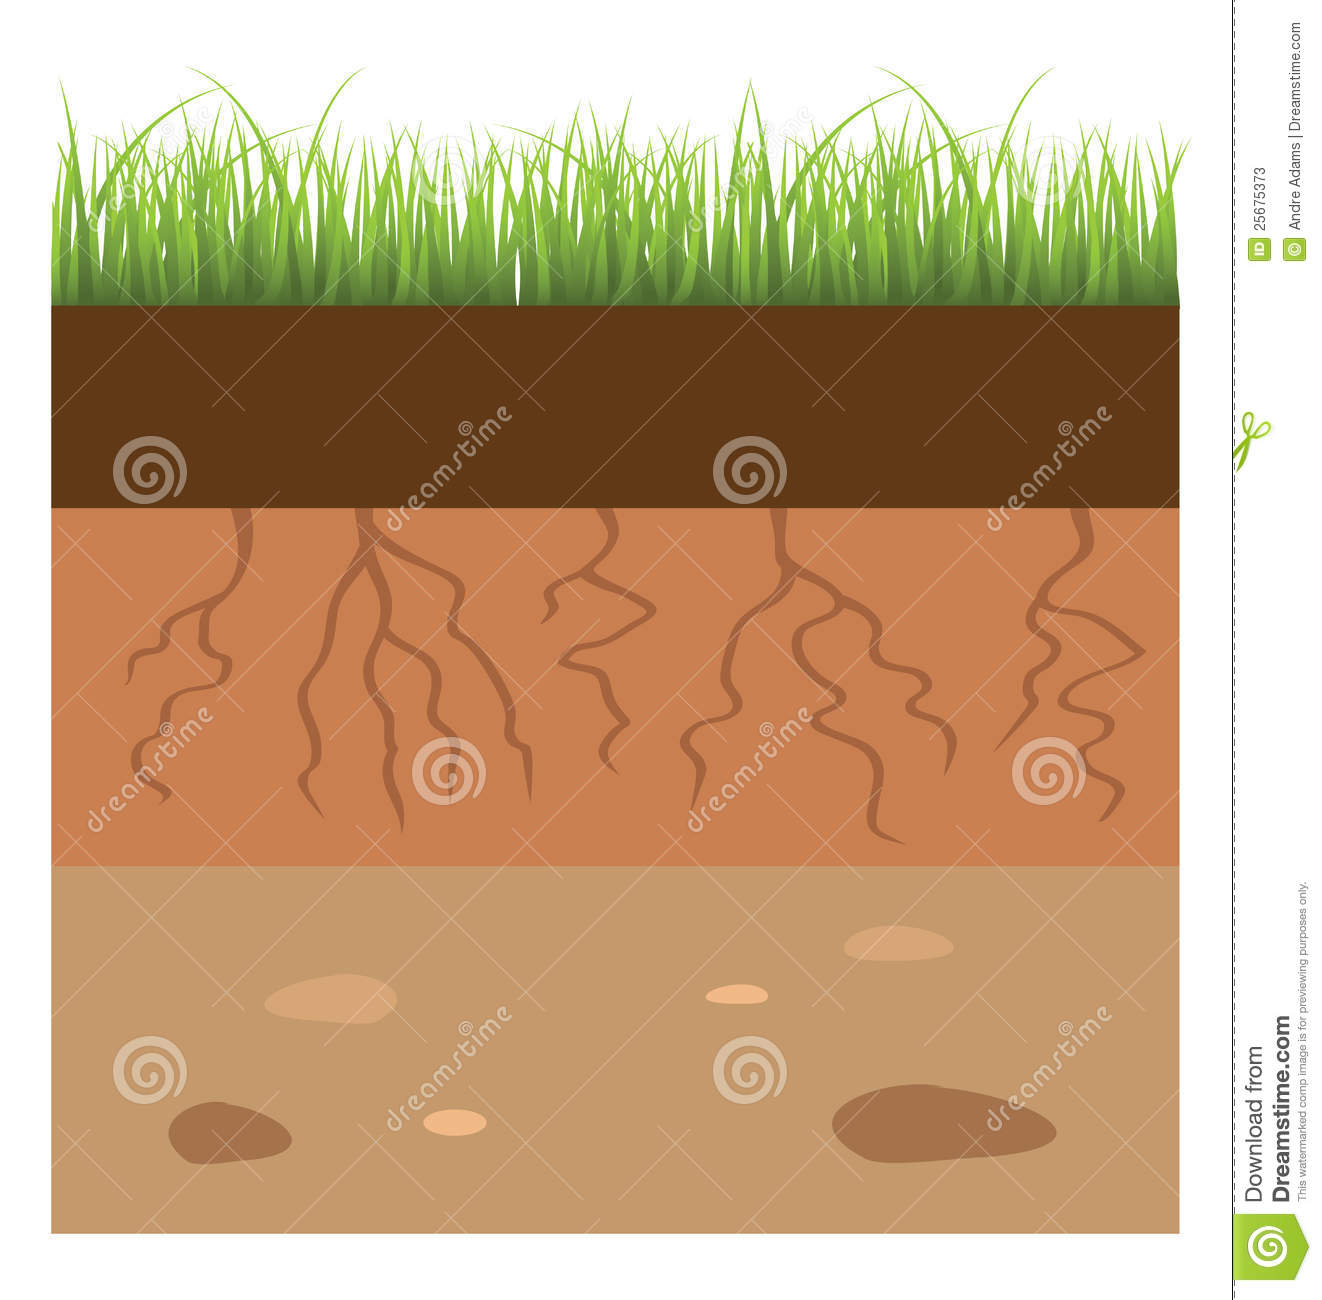 Soil layer stock vector. Illustration of fertile, cartoon ...